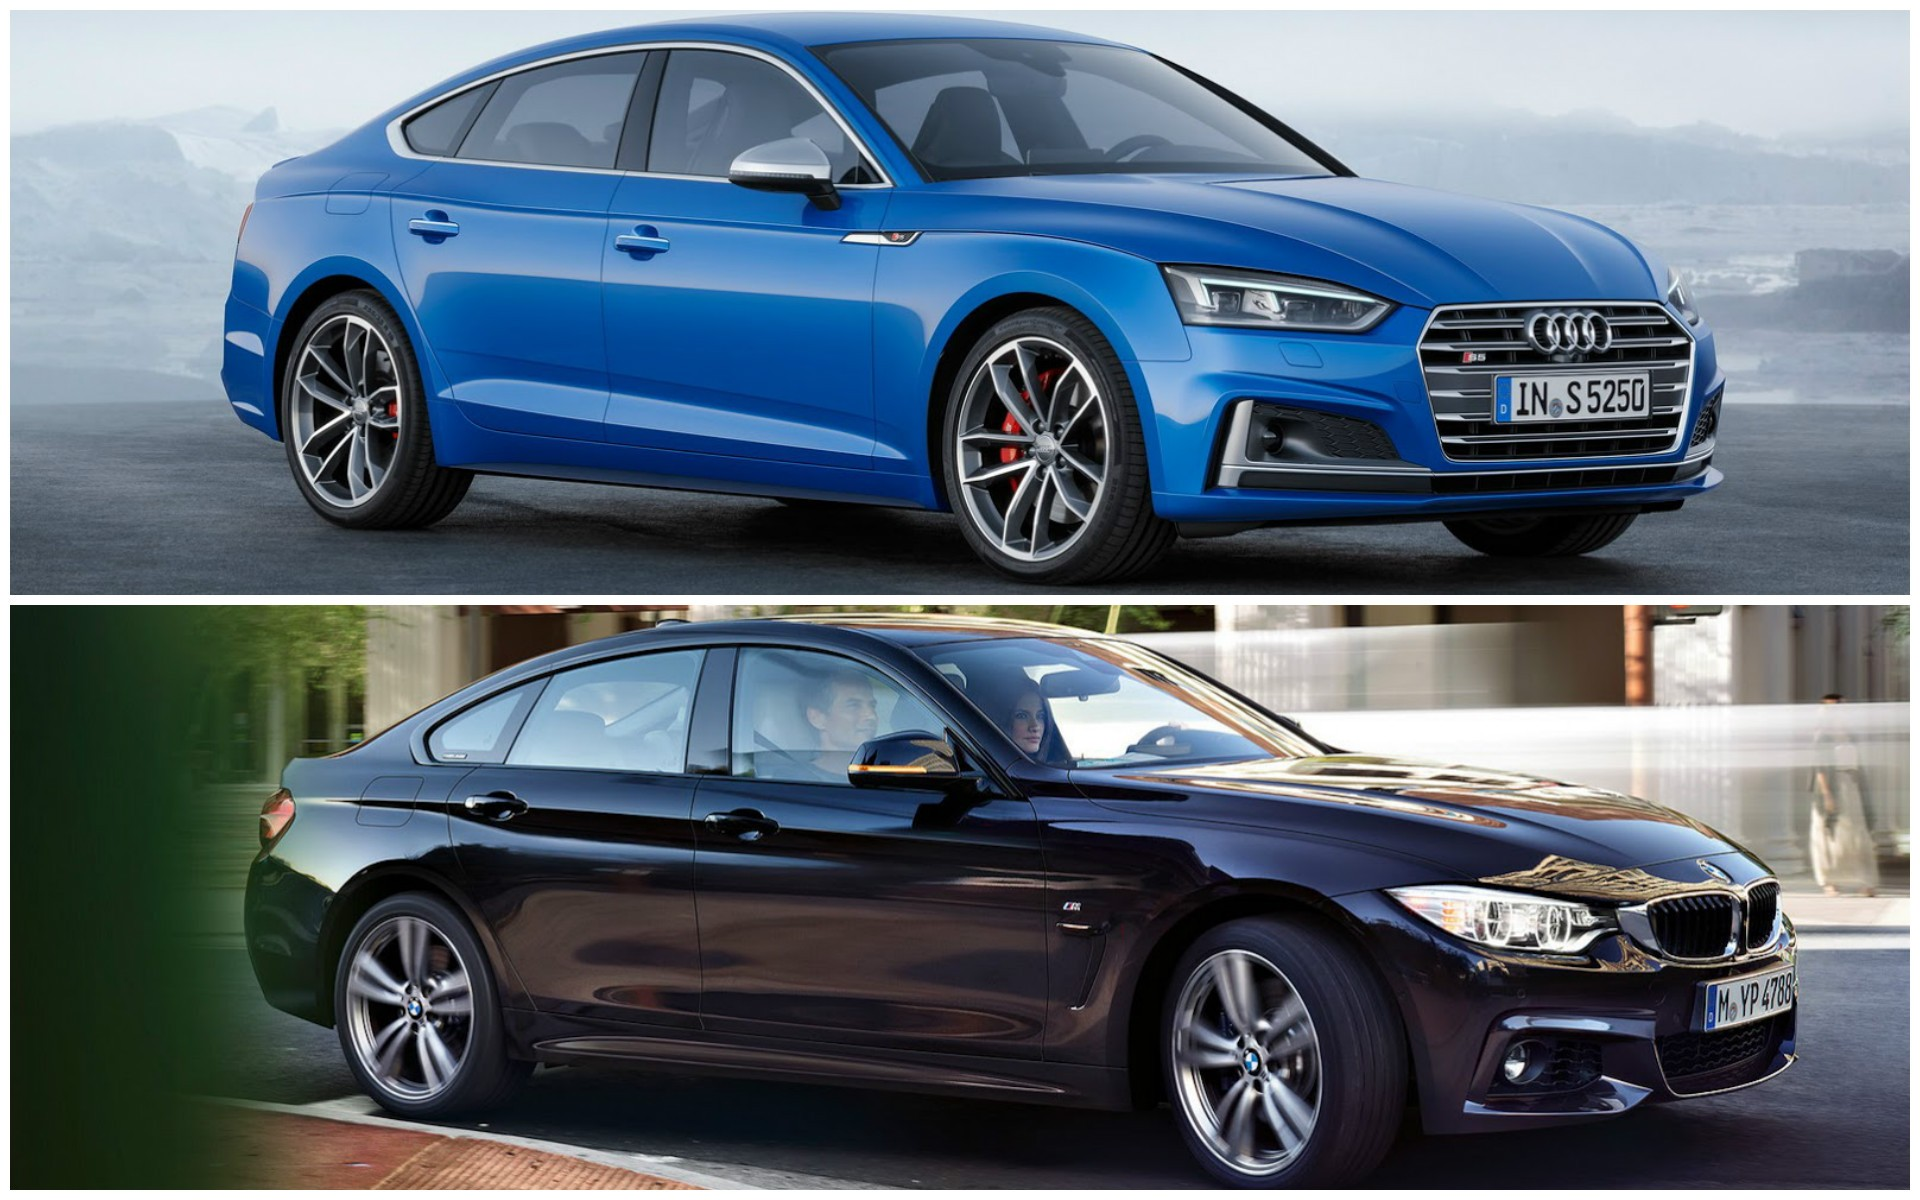 2017 audi a5 sportback vs bmw 4 series gran coupe photo. Black Bedroom Furniture Sets. Home Design Ideas